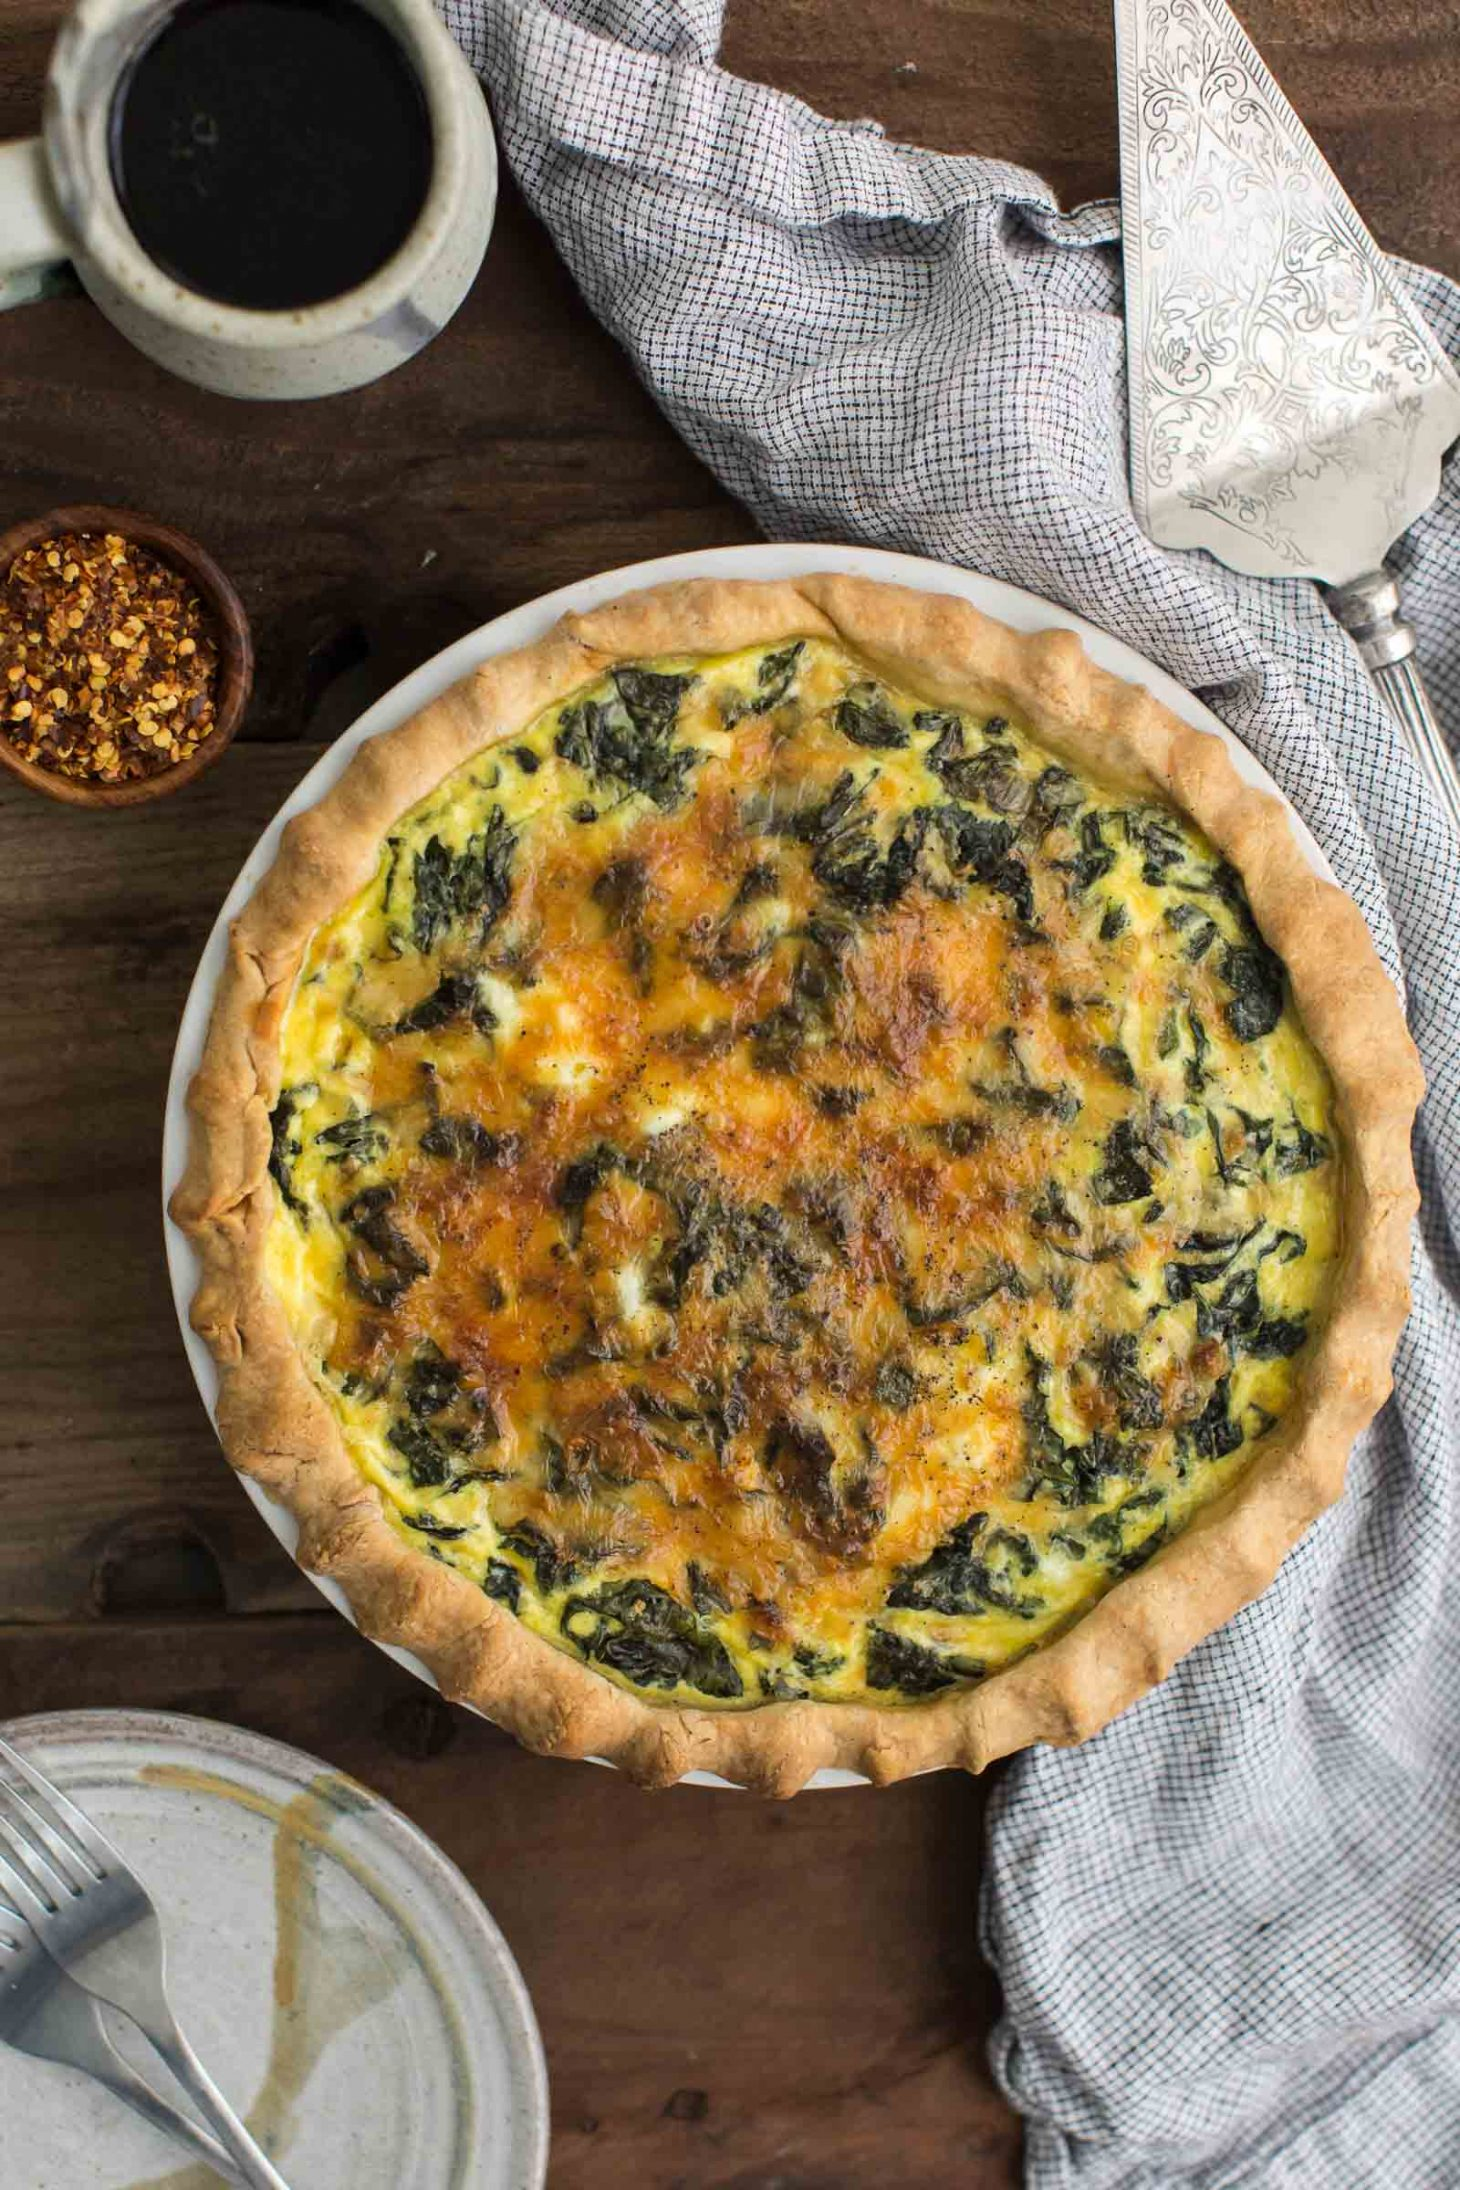 Kale Quiche with Garlic and Homemade Crust | @naturallyella